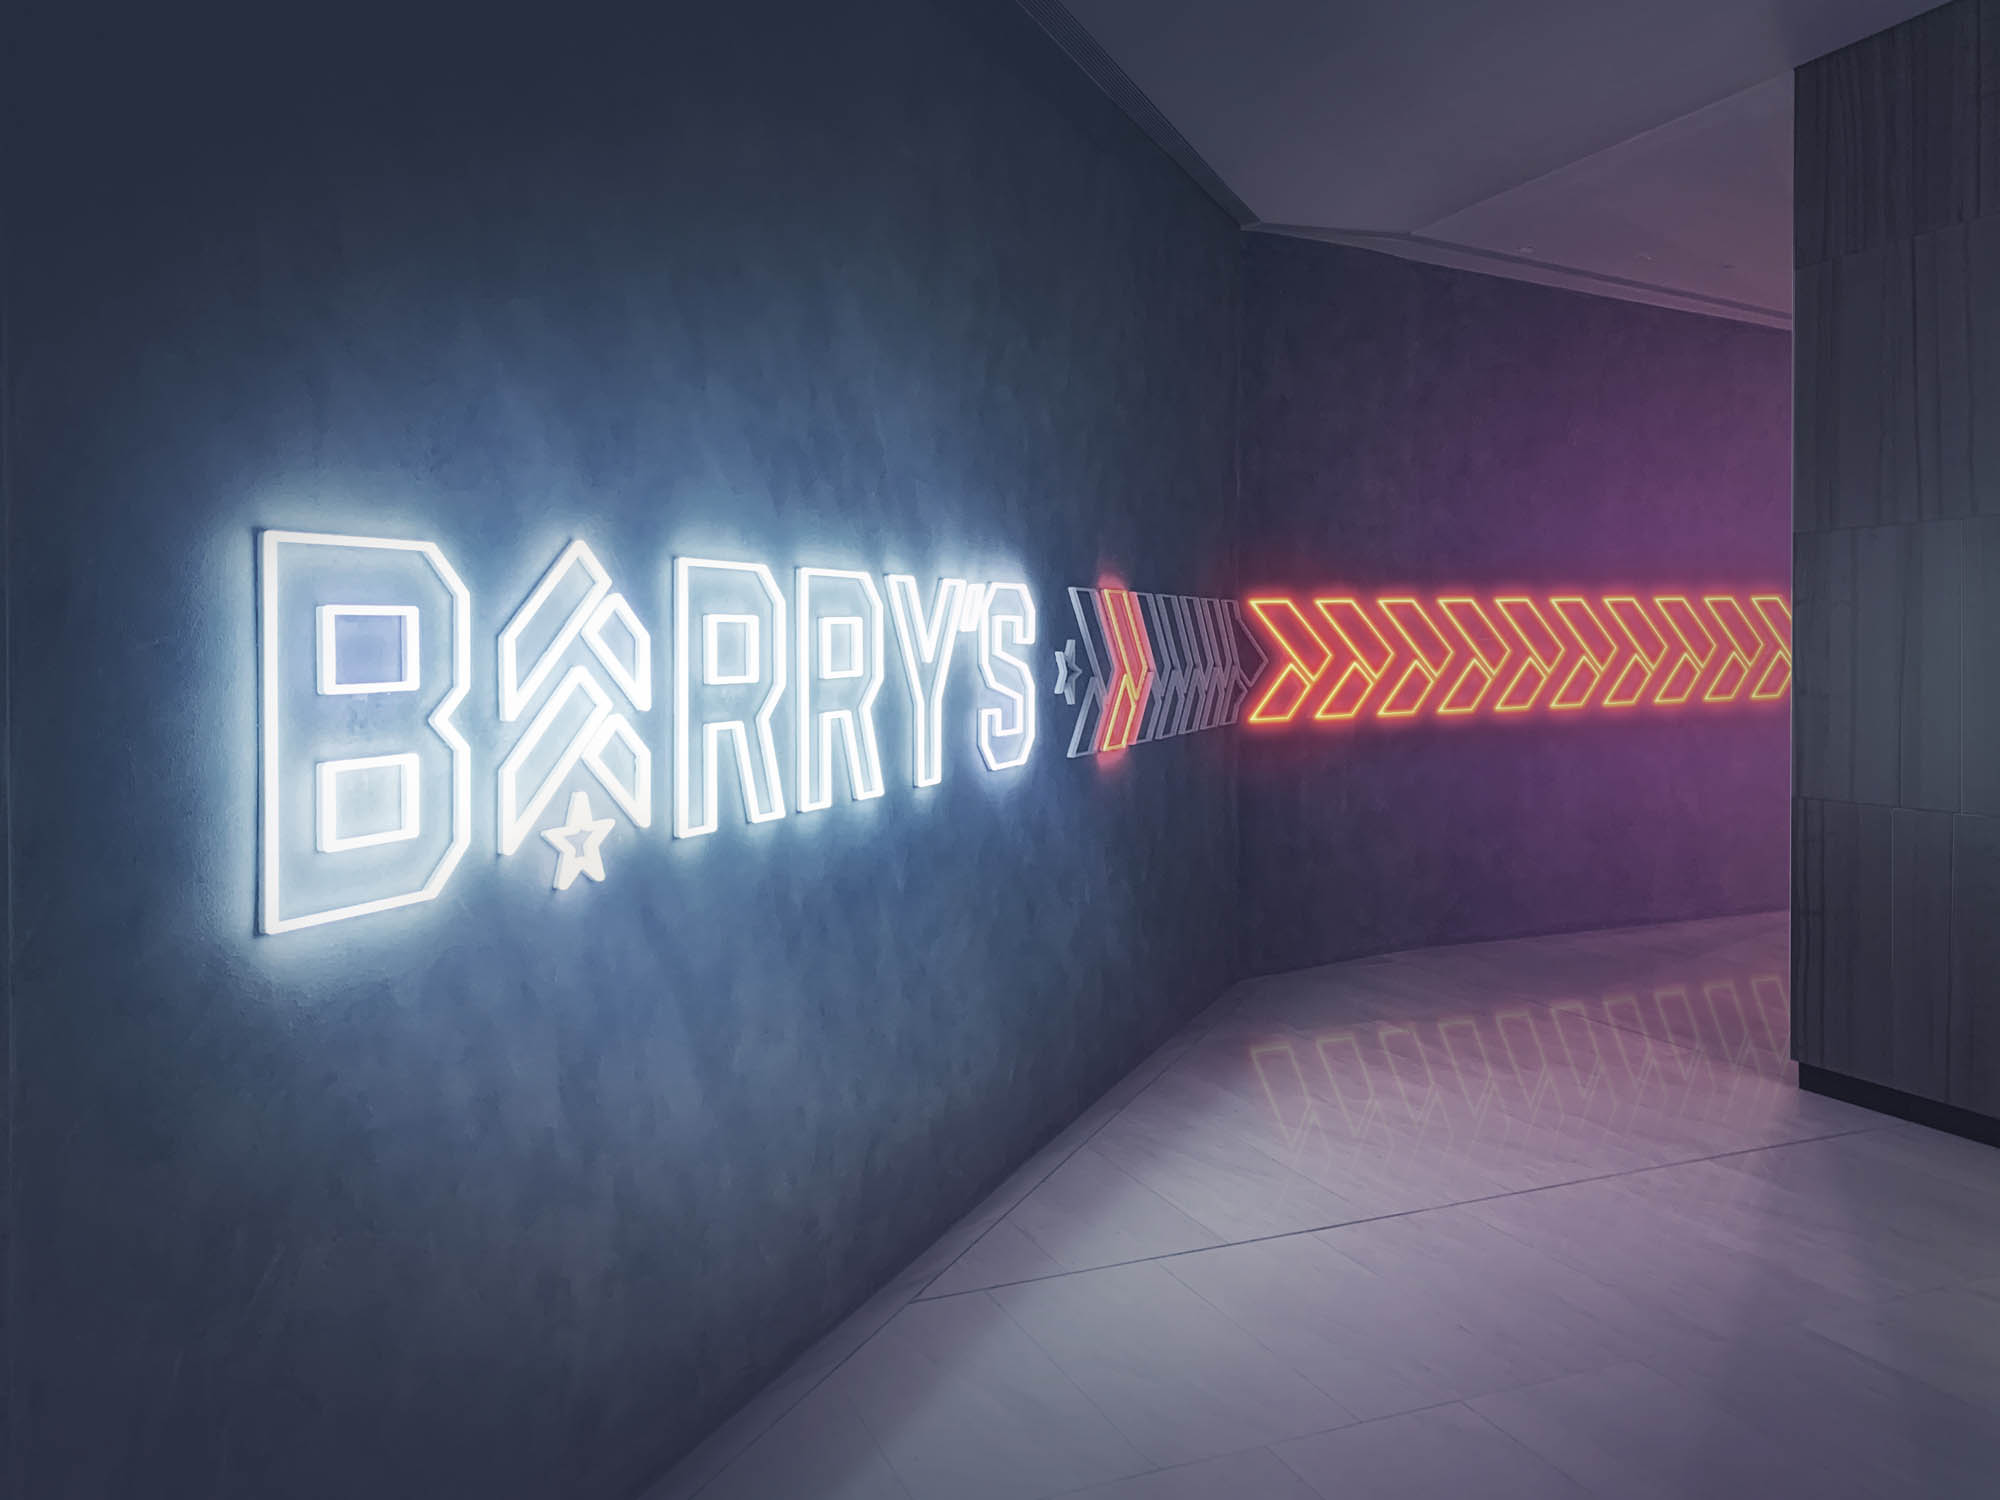 Barry's Bootcamp Robinson Square Singapore fitout construction gym workout amenities signage hallway lighting led